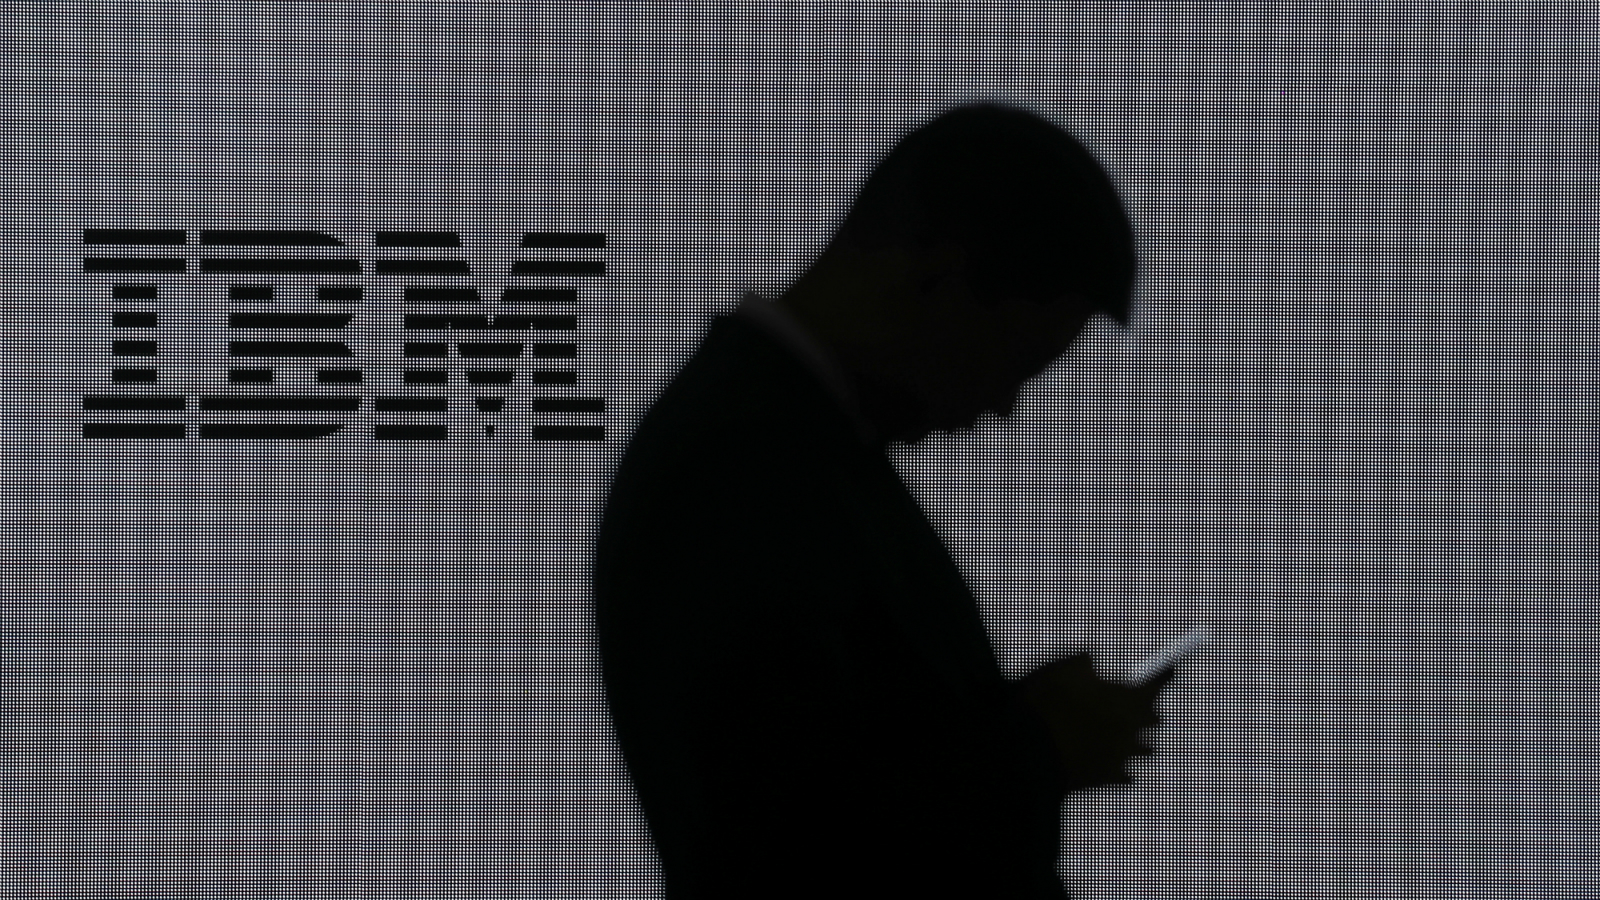 Is It Time To Buy Stock? International Business Machines Corporation (IBM)